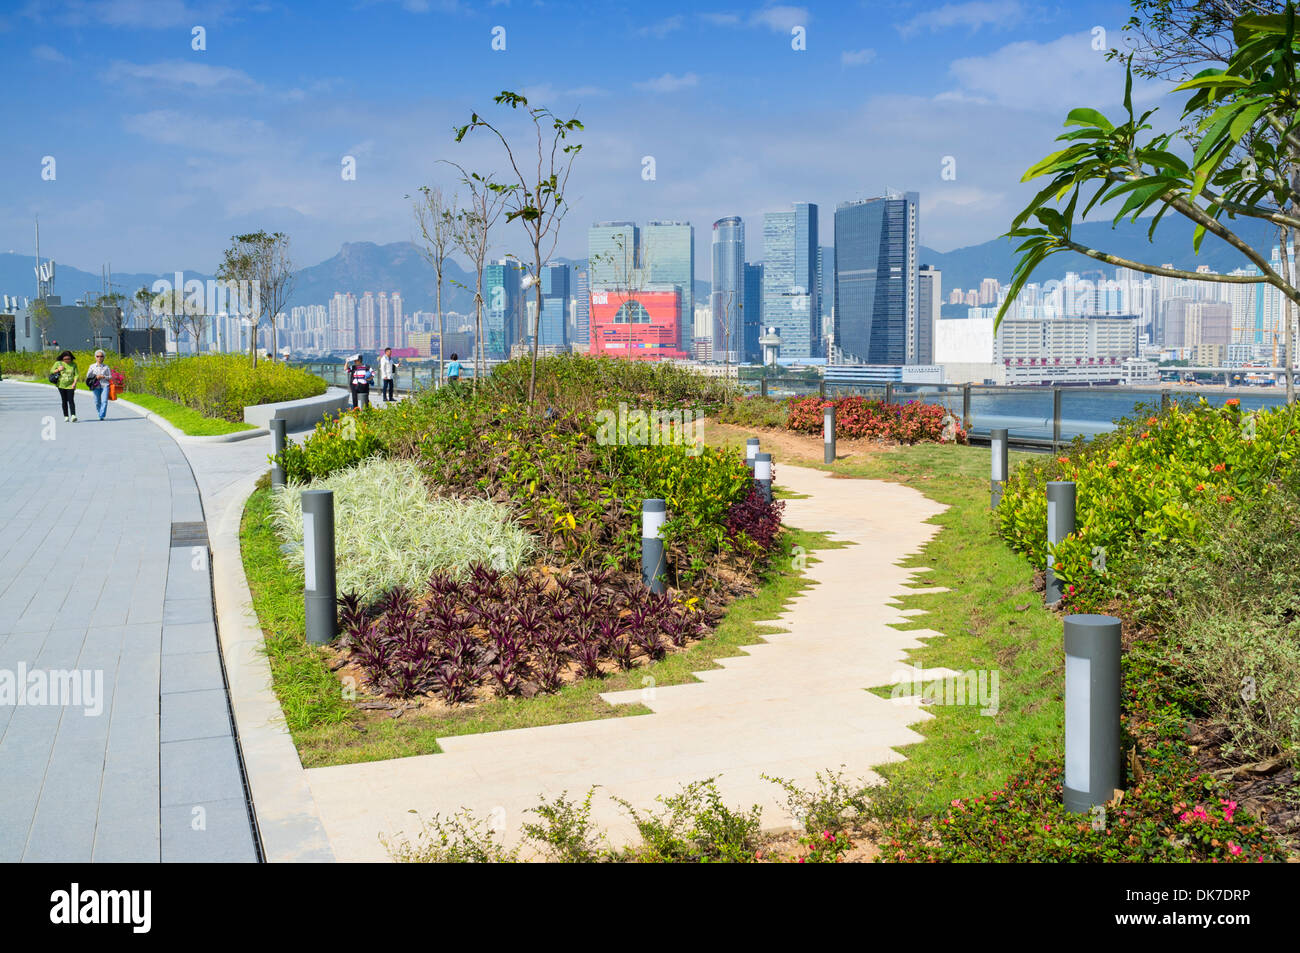 Public Garden And Park On Rooftop Of New Kai Tak Cruise Terminal In Stock Photo Royalty Free